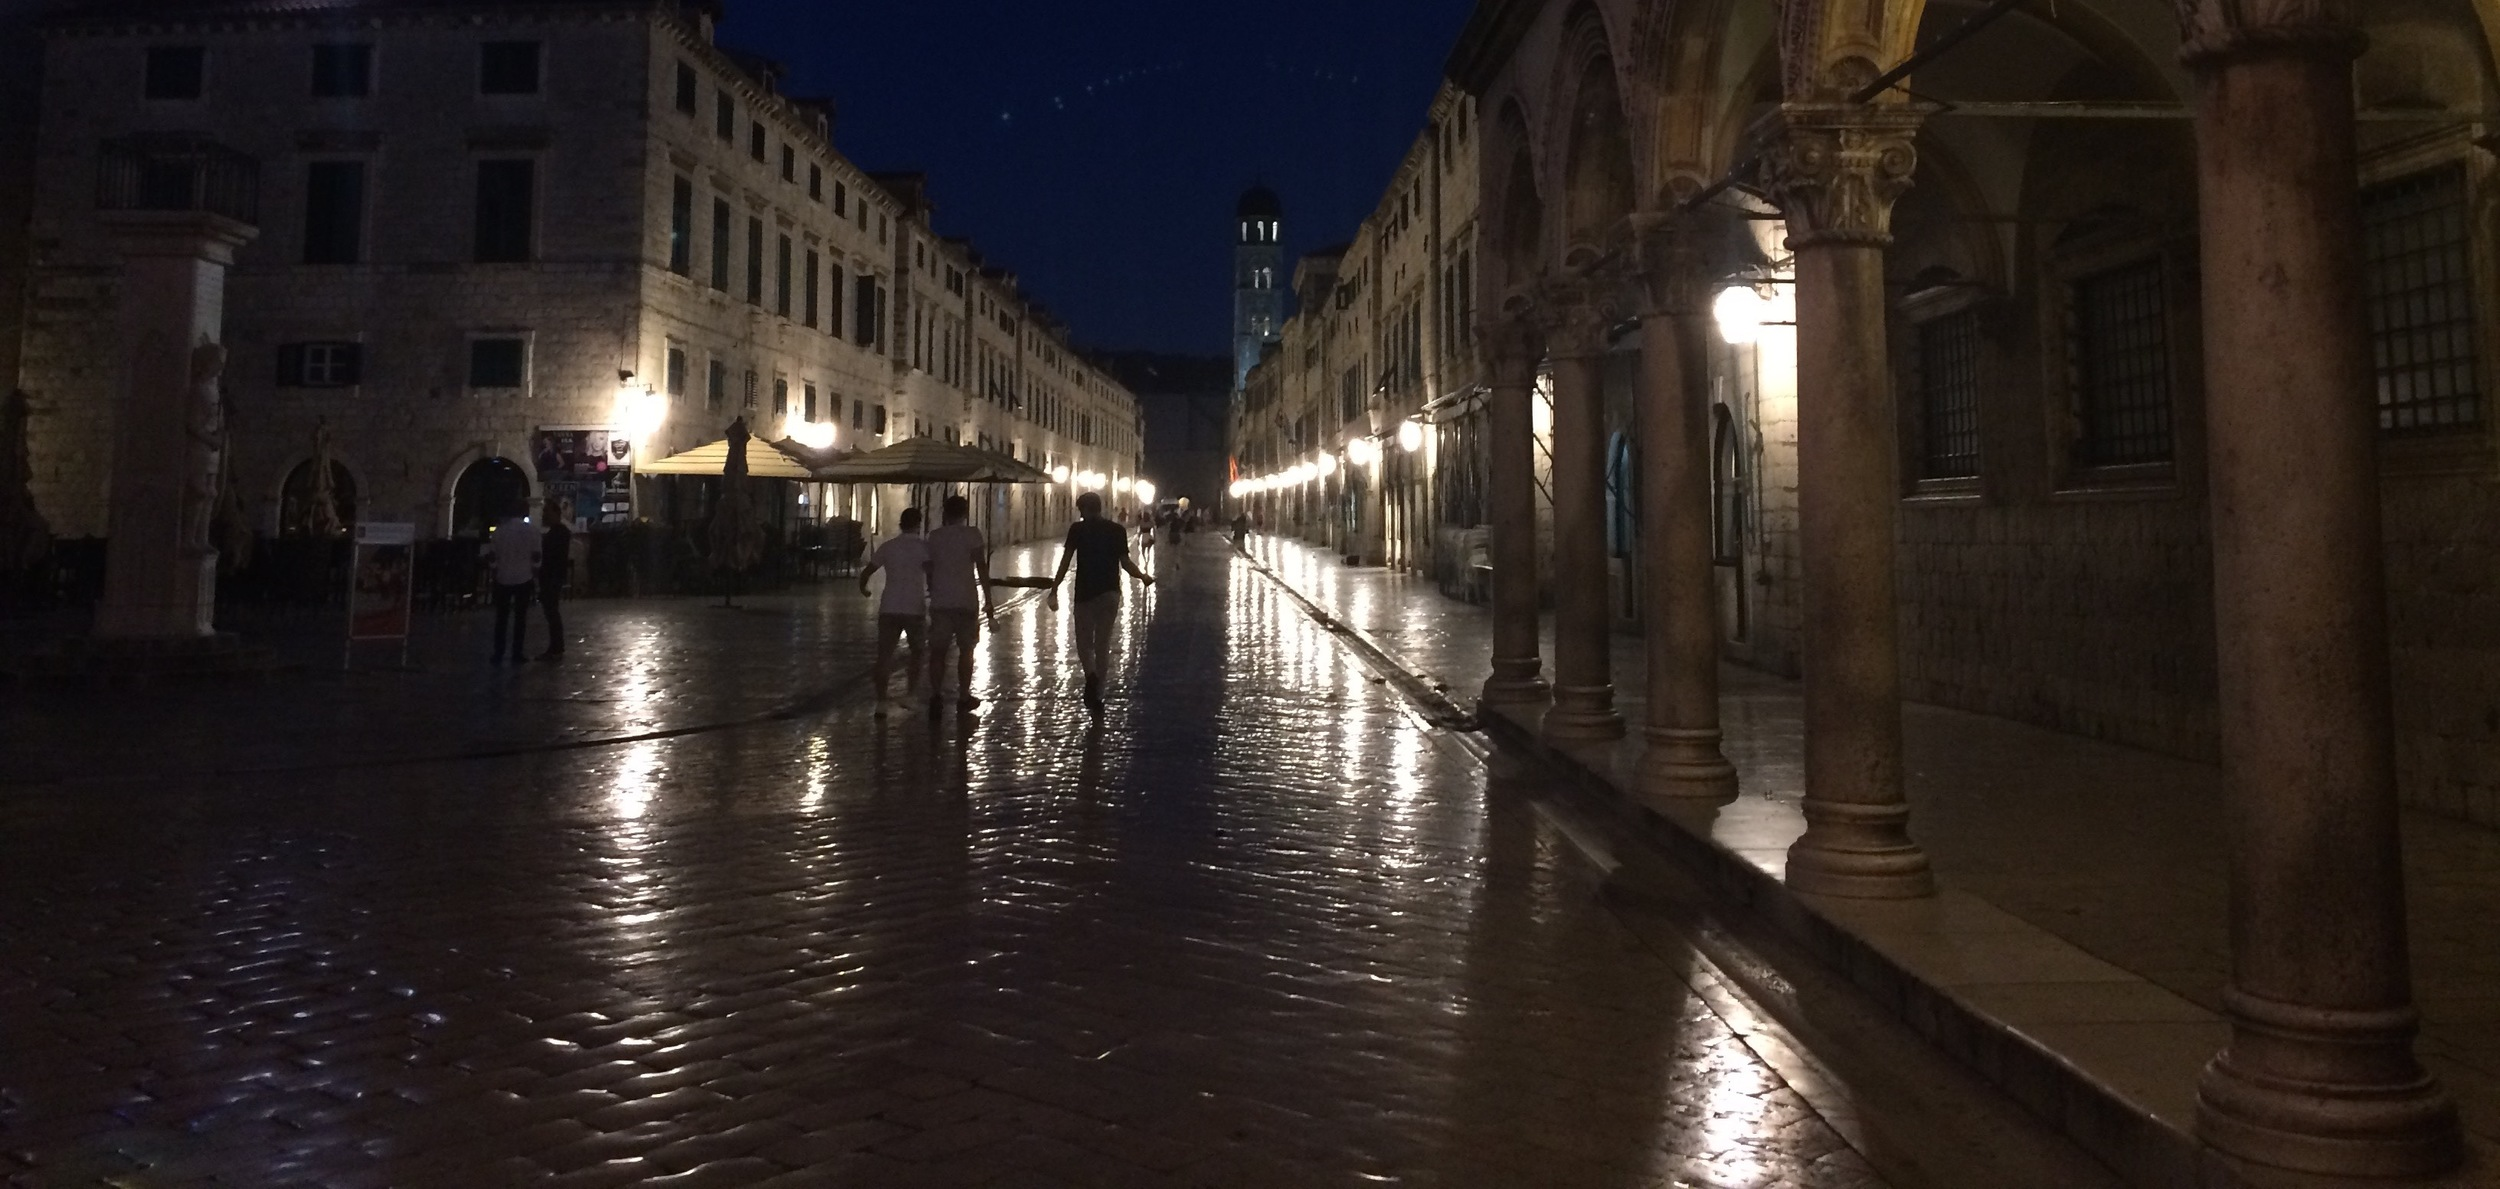 Dubrovnik's main street, Stradun, at 5:00 AM when all is quiet. The surface is not wet, it is highly polished from centuries of foot travel.